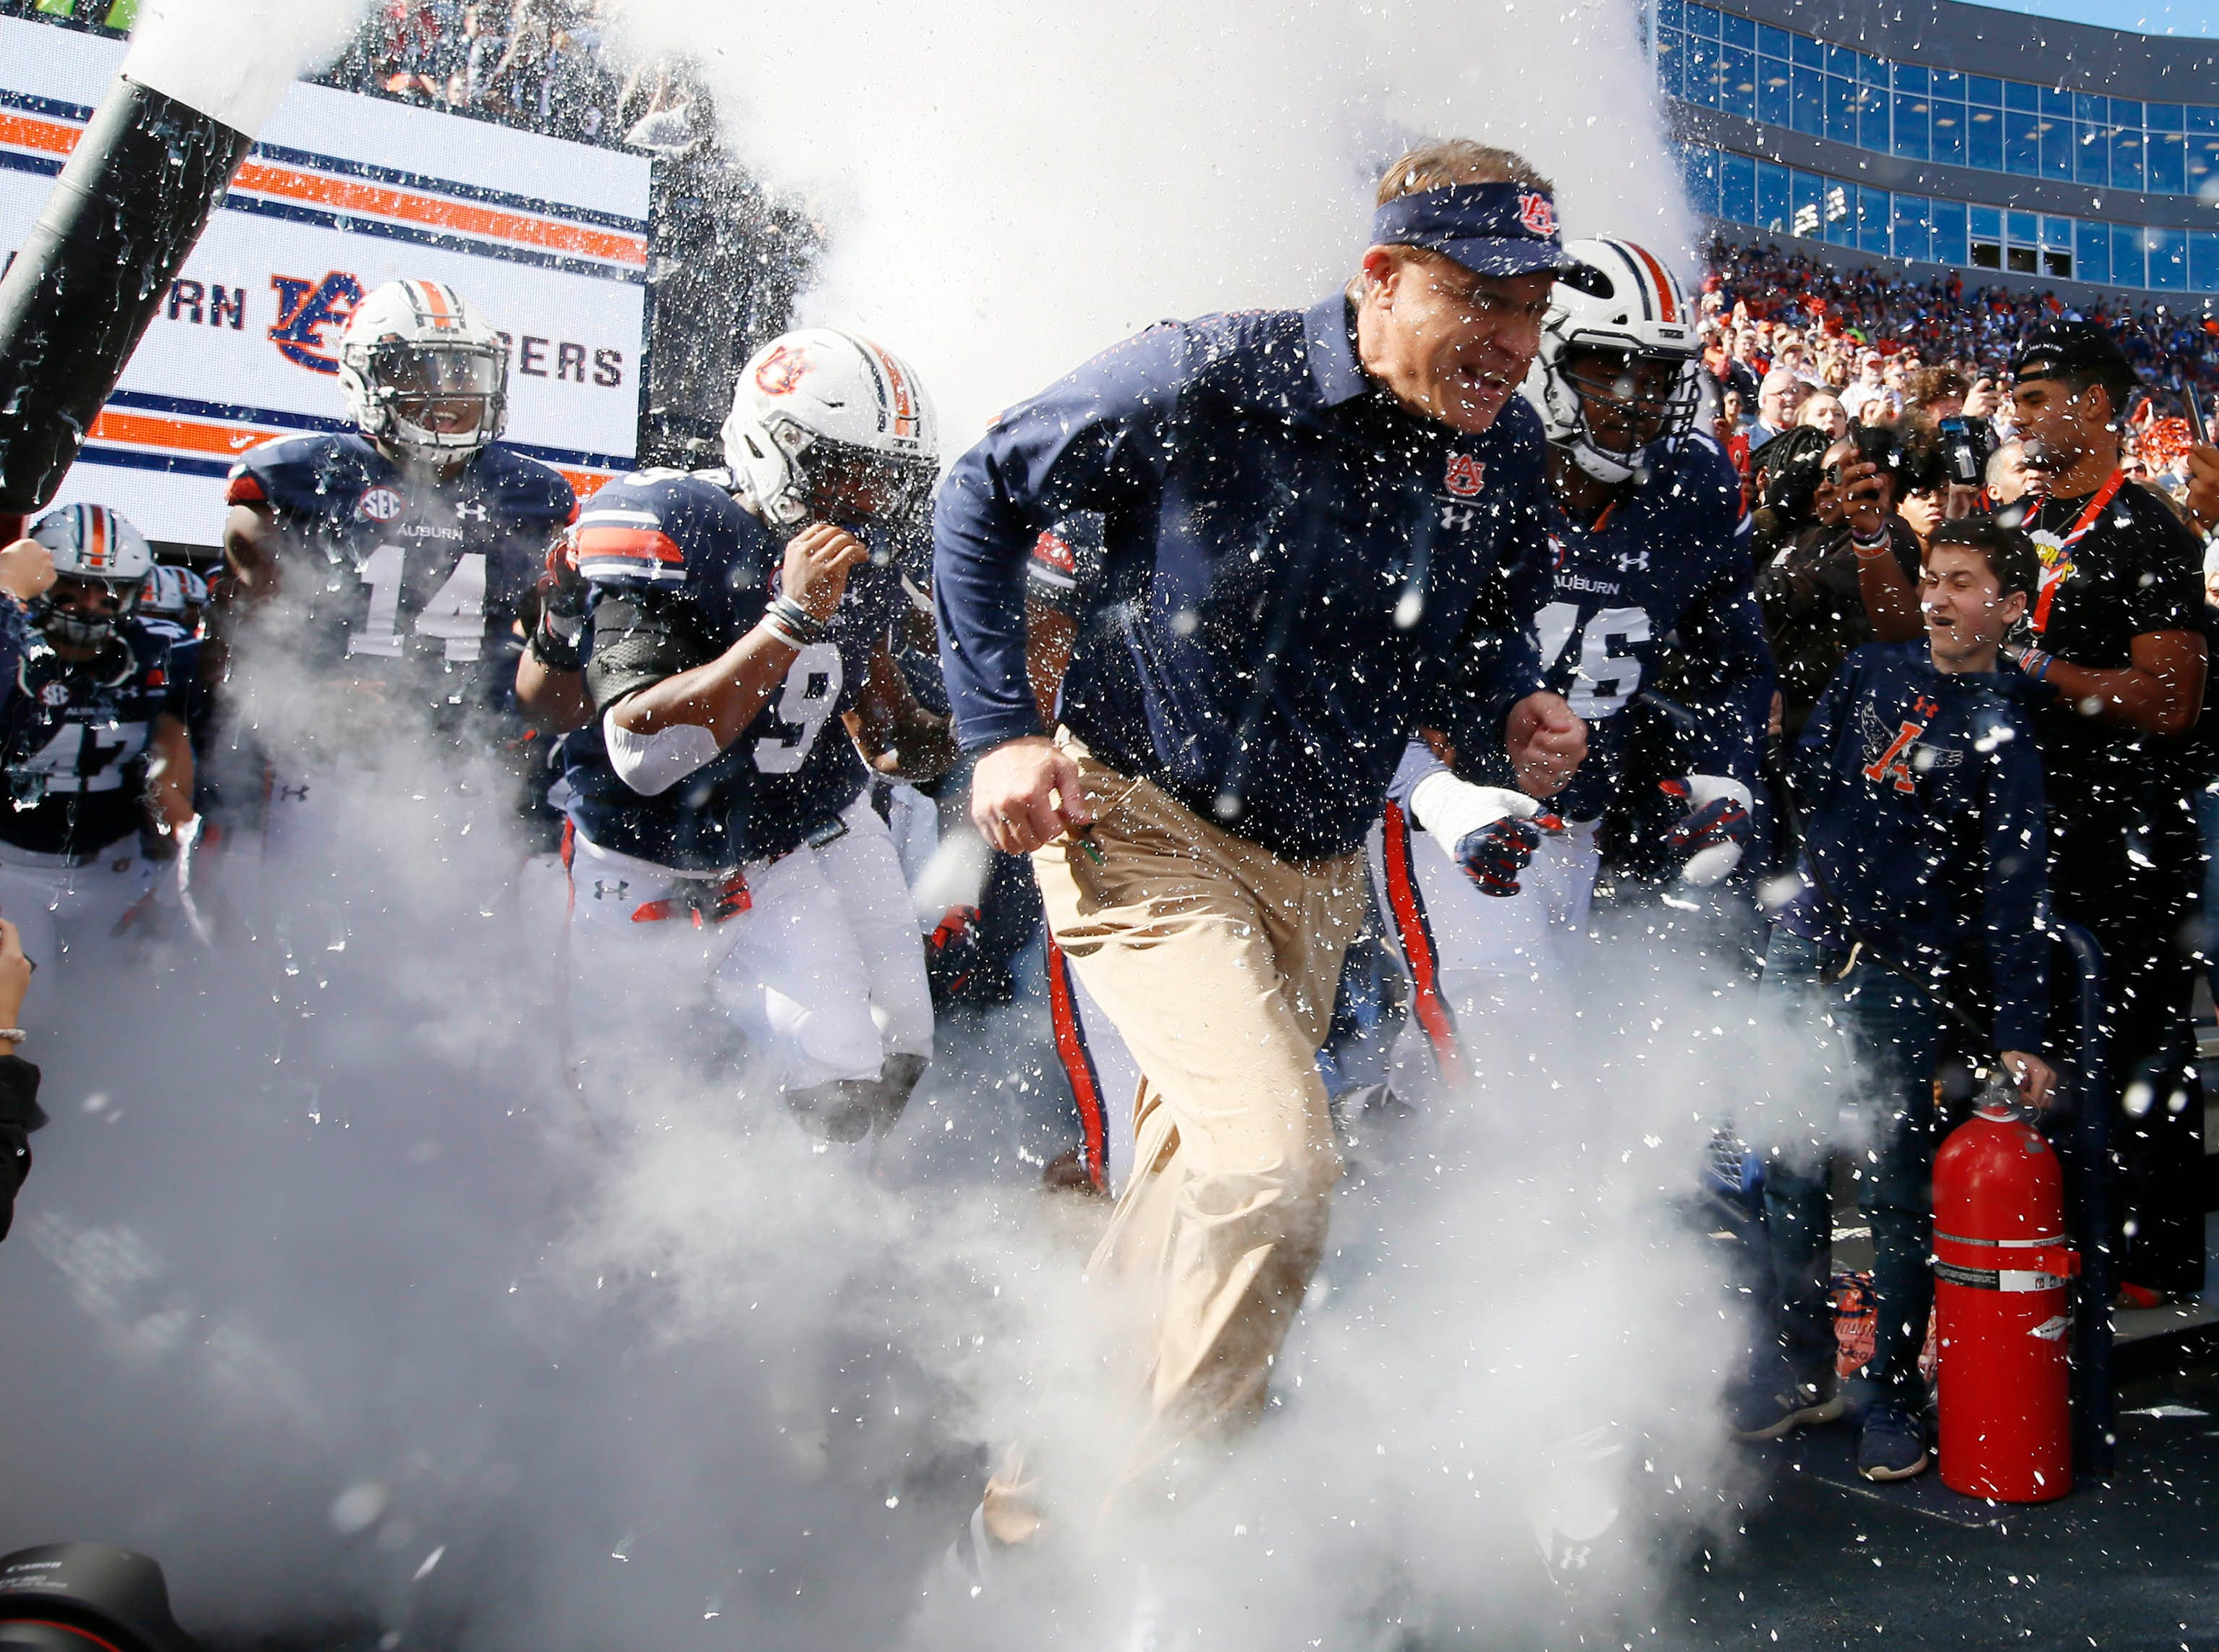 Auburn Tigers head coach Gus Malzahn leads the team onto the field before the game against the Texas A&M Aggies at Jordan-Hare Stadium.